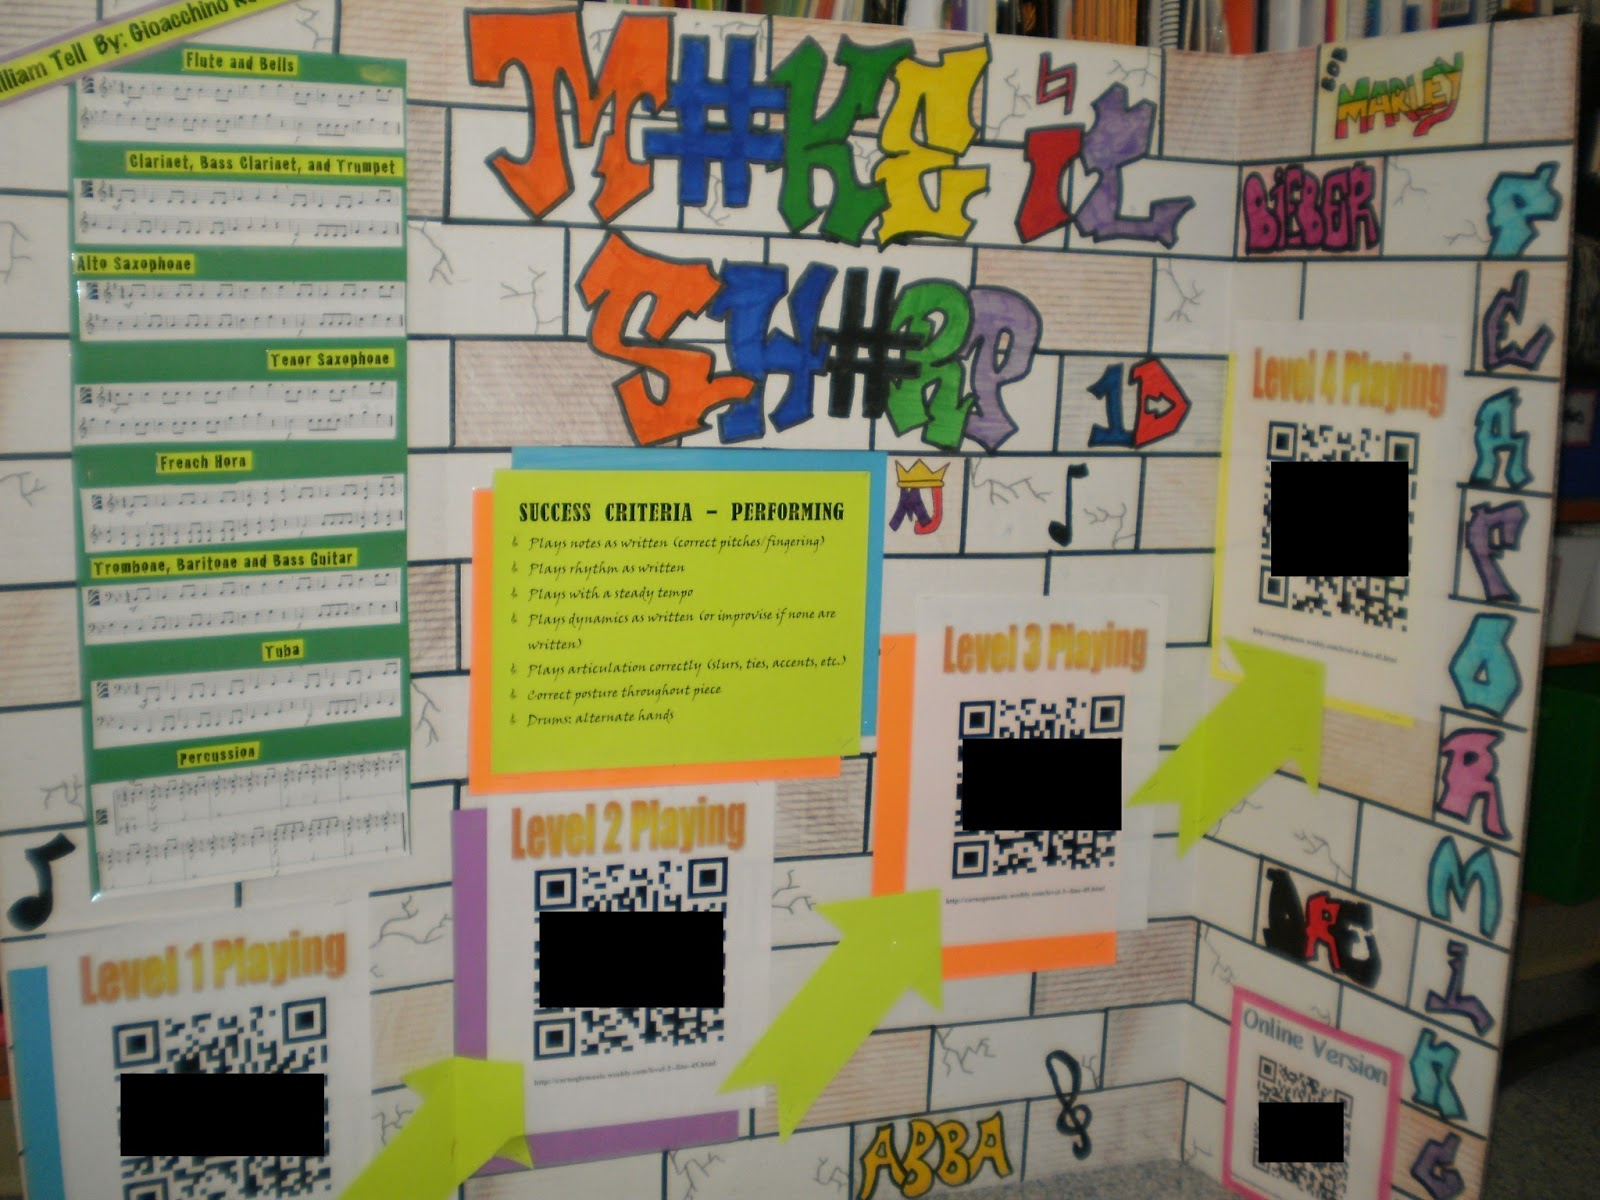 Increase student achievement by using bump it up boards as an effective instructional strategy from the 2 Peas and a Dog blog.